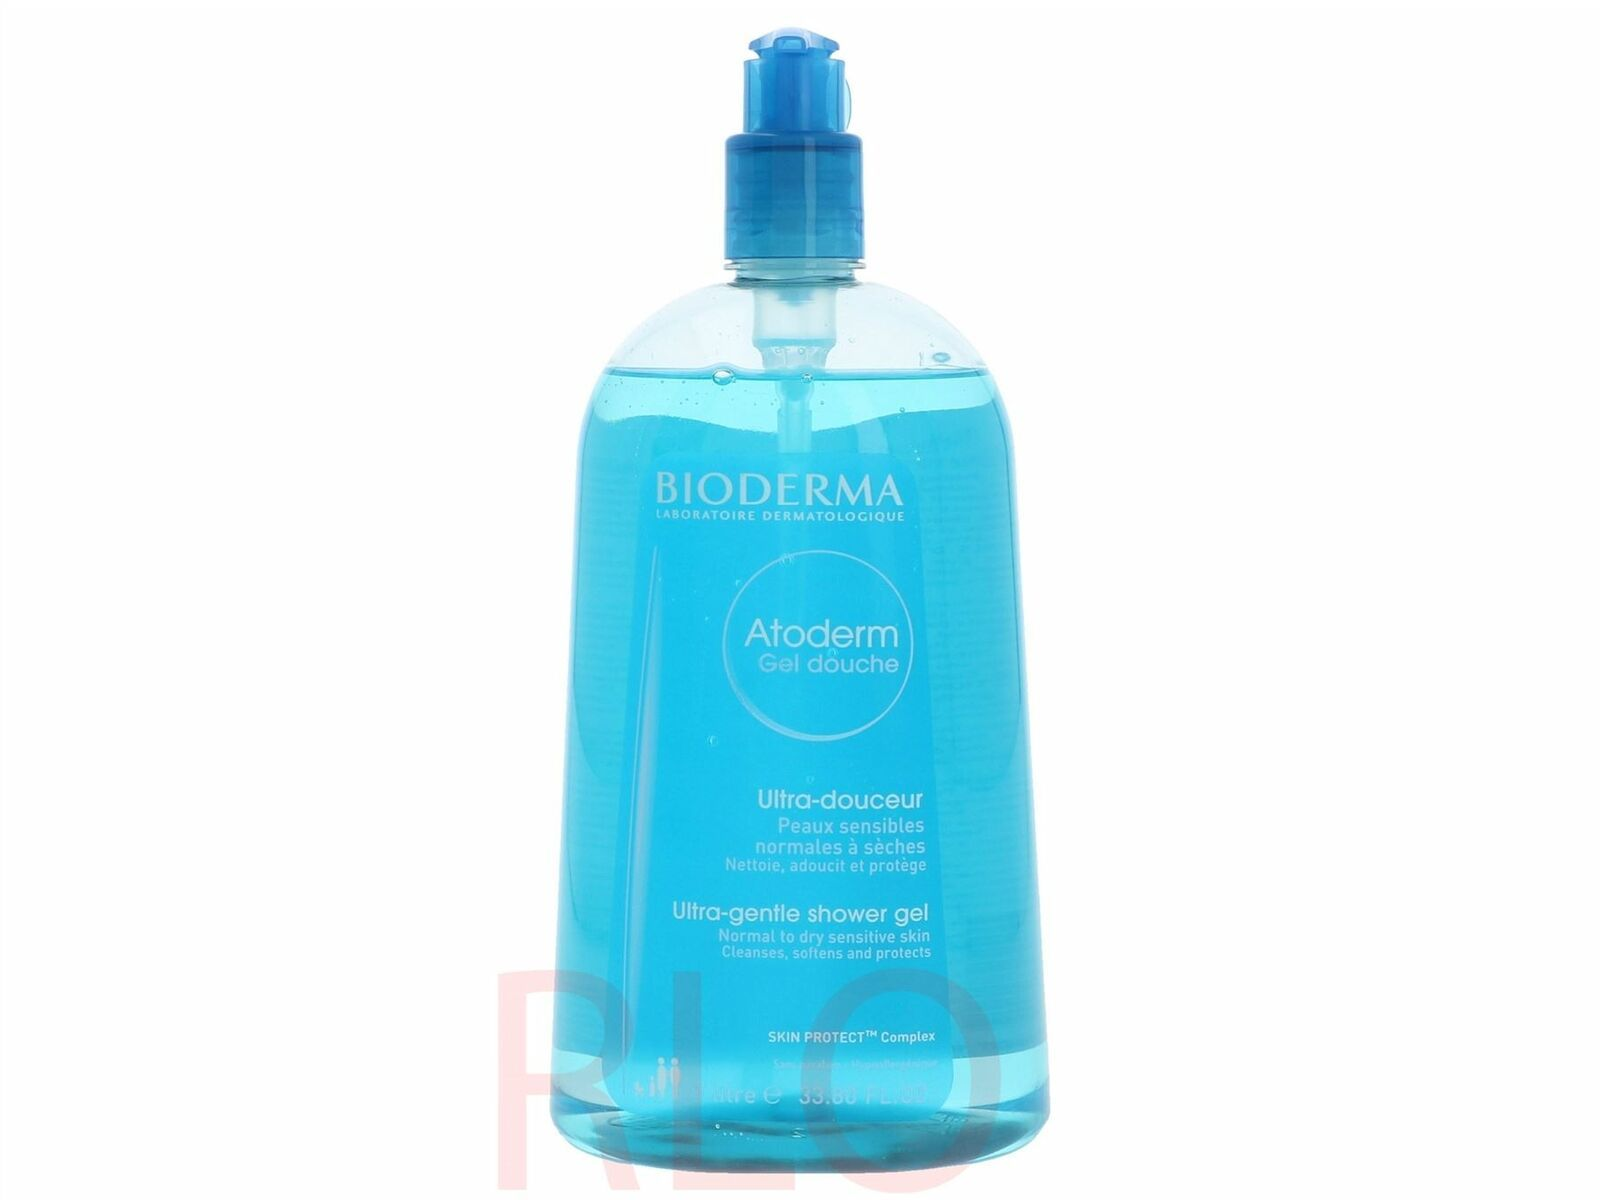 Bioderma Atoderm 1liter Care Women Bioderma Atoderm Display Ads